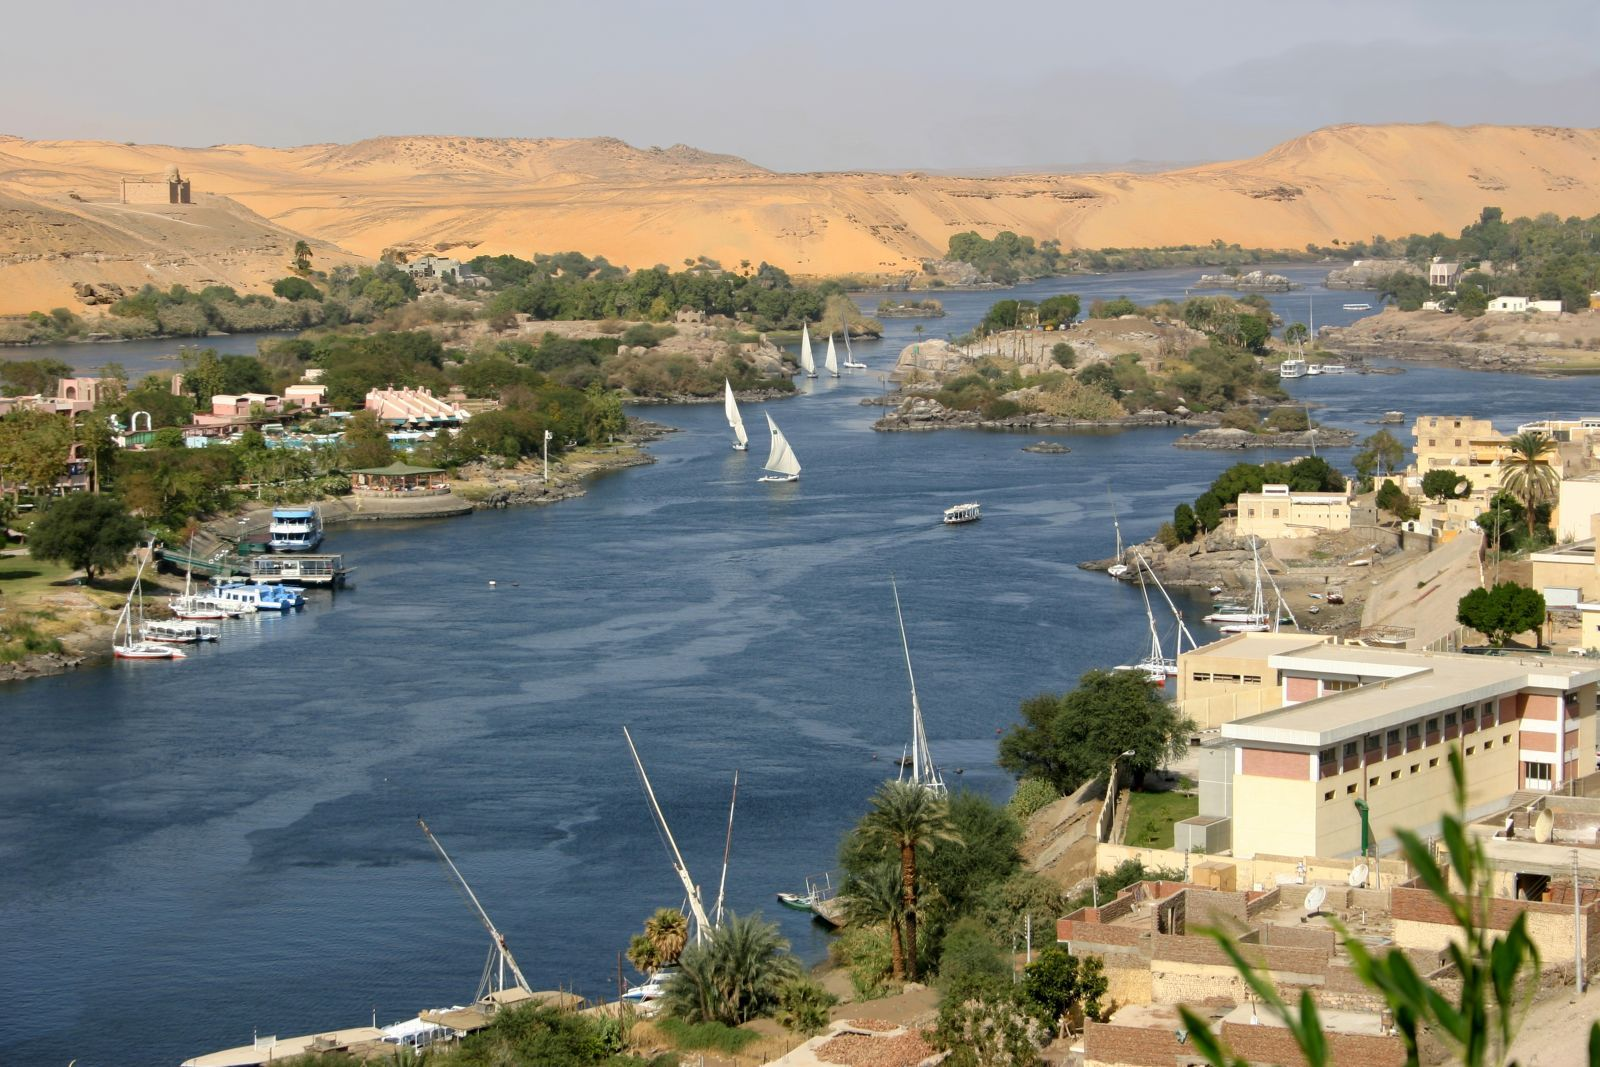 The Nile River Km The Longest River In The World Is The Nile - Ten longest rivers in the world